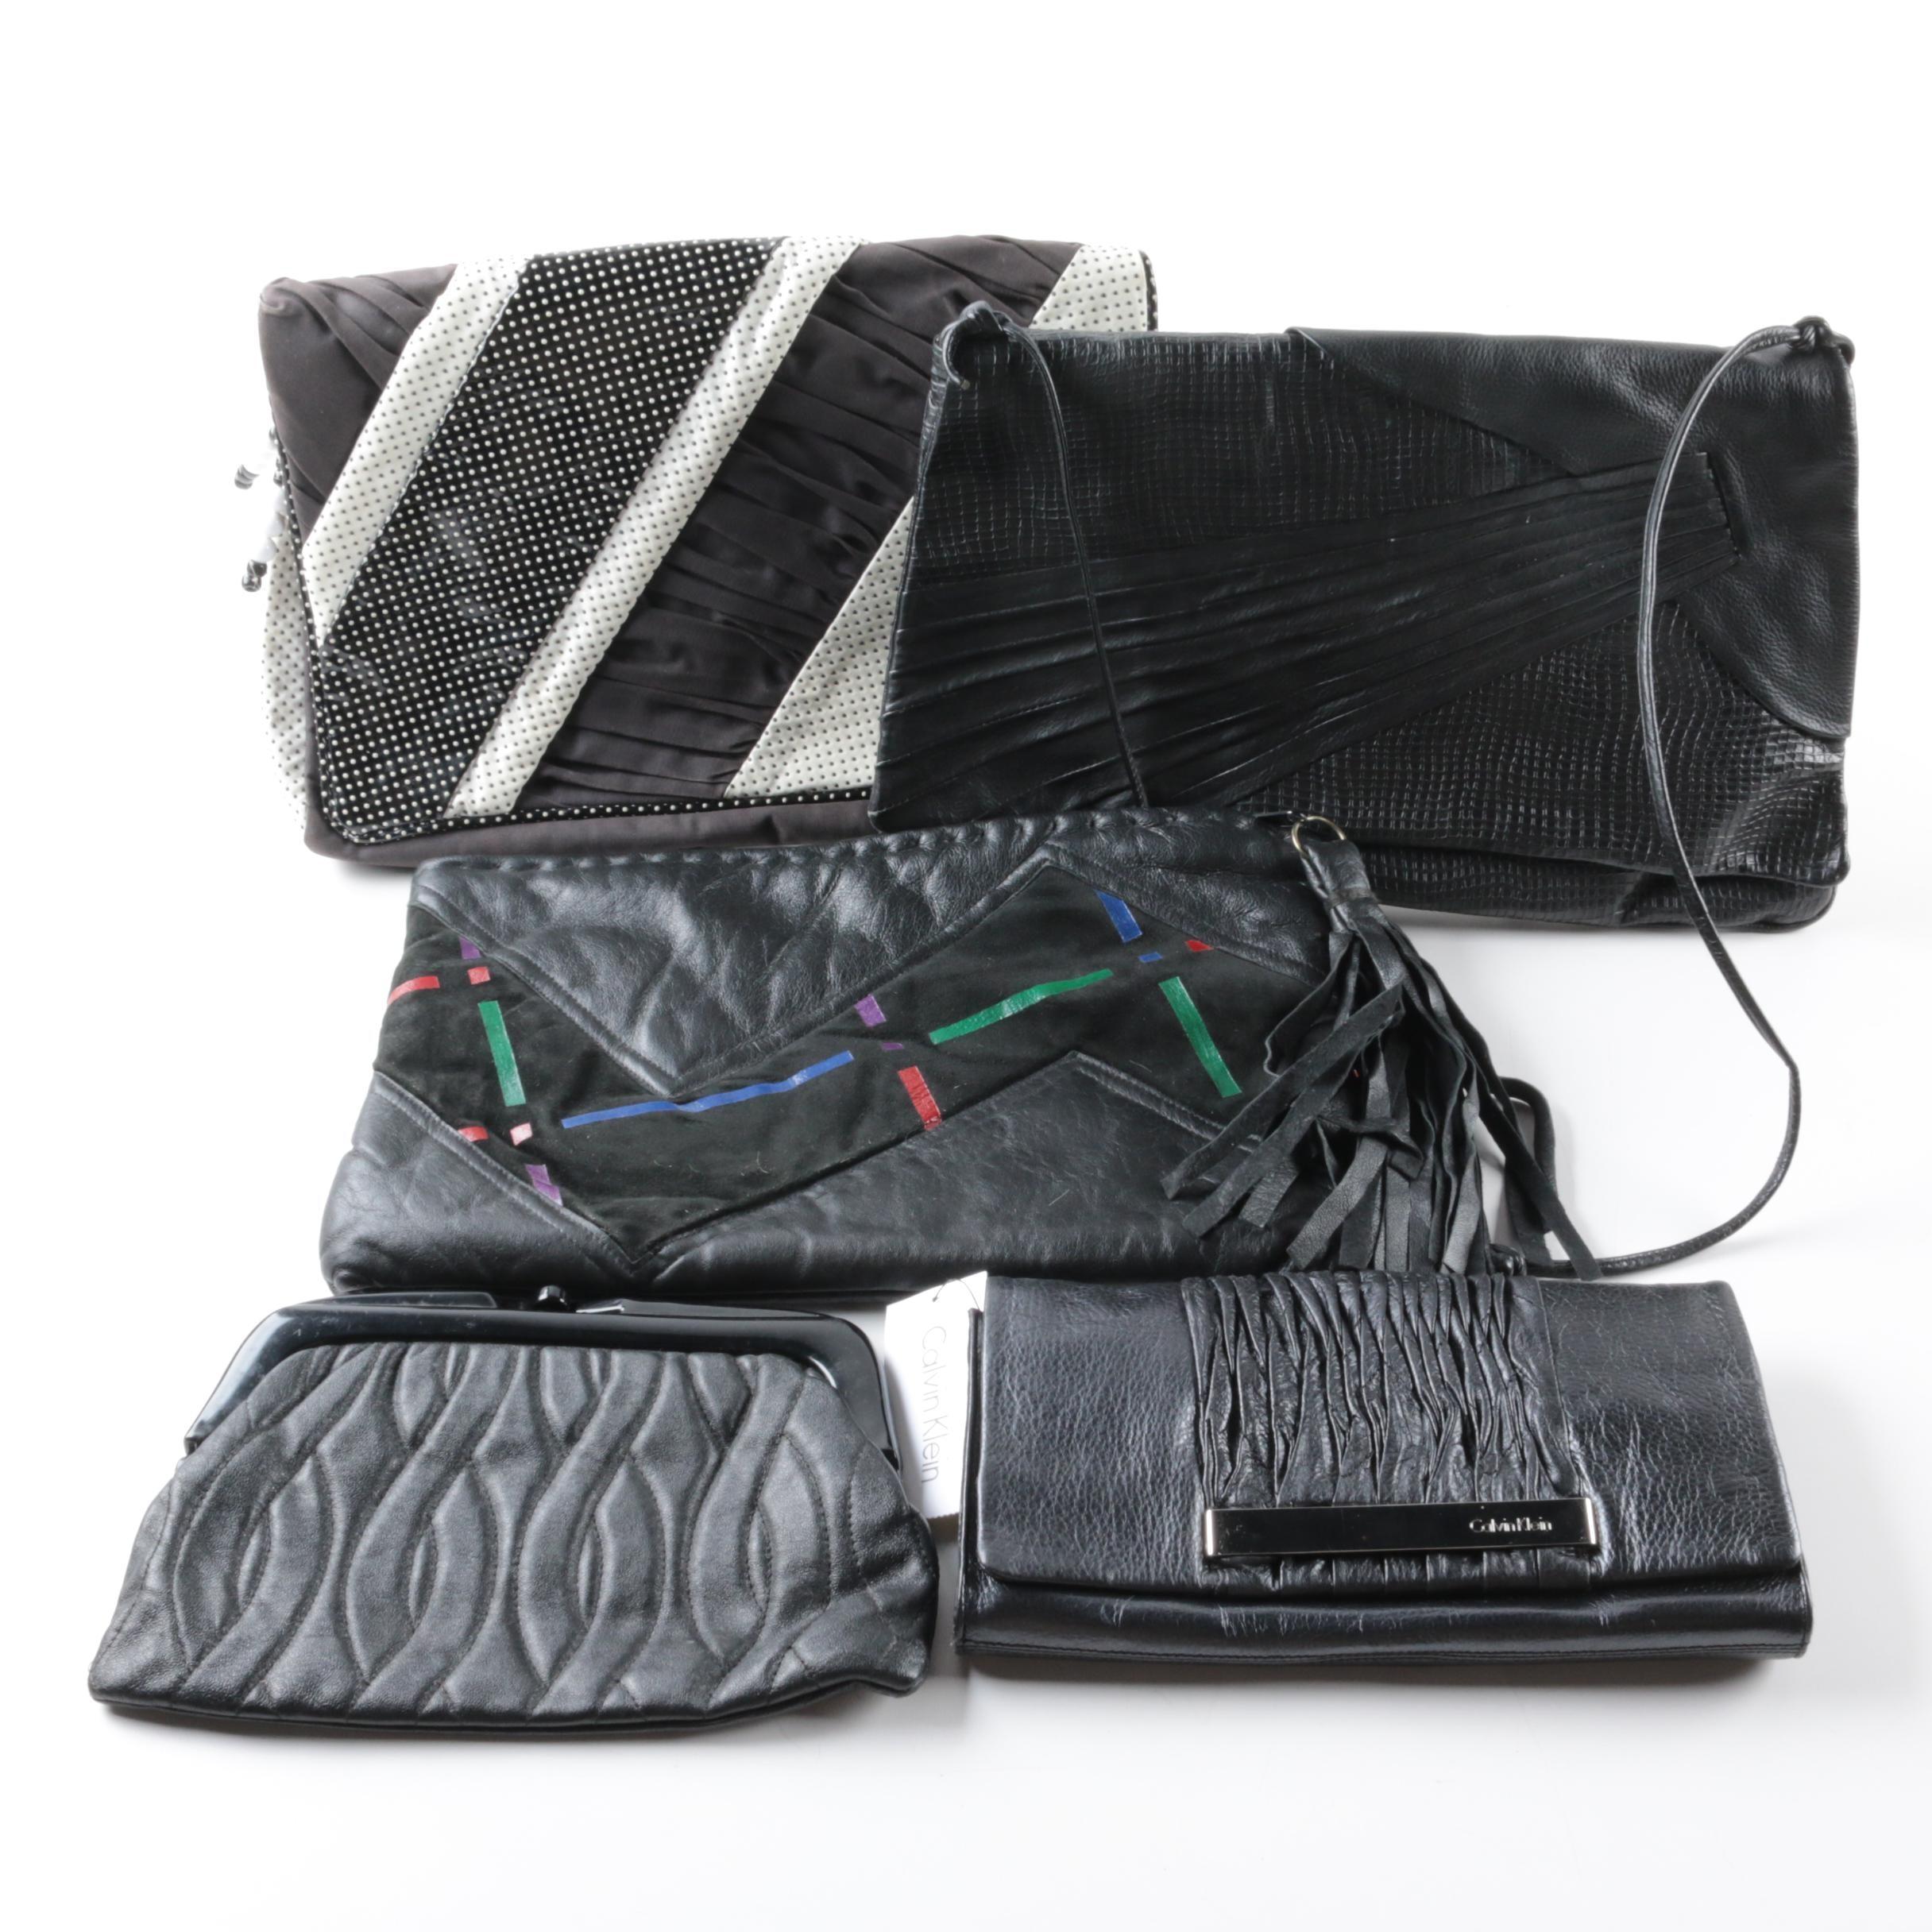 Black Leather Clutches Including Morgan Le Fay and Calvin Klein